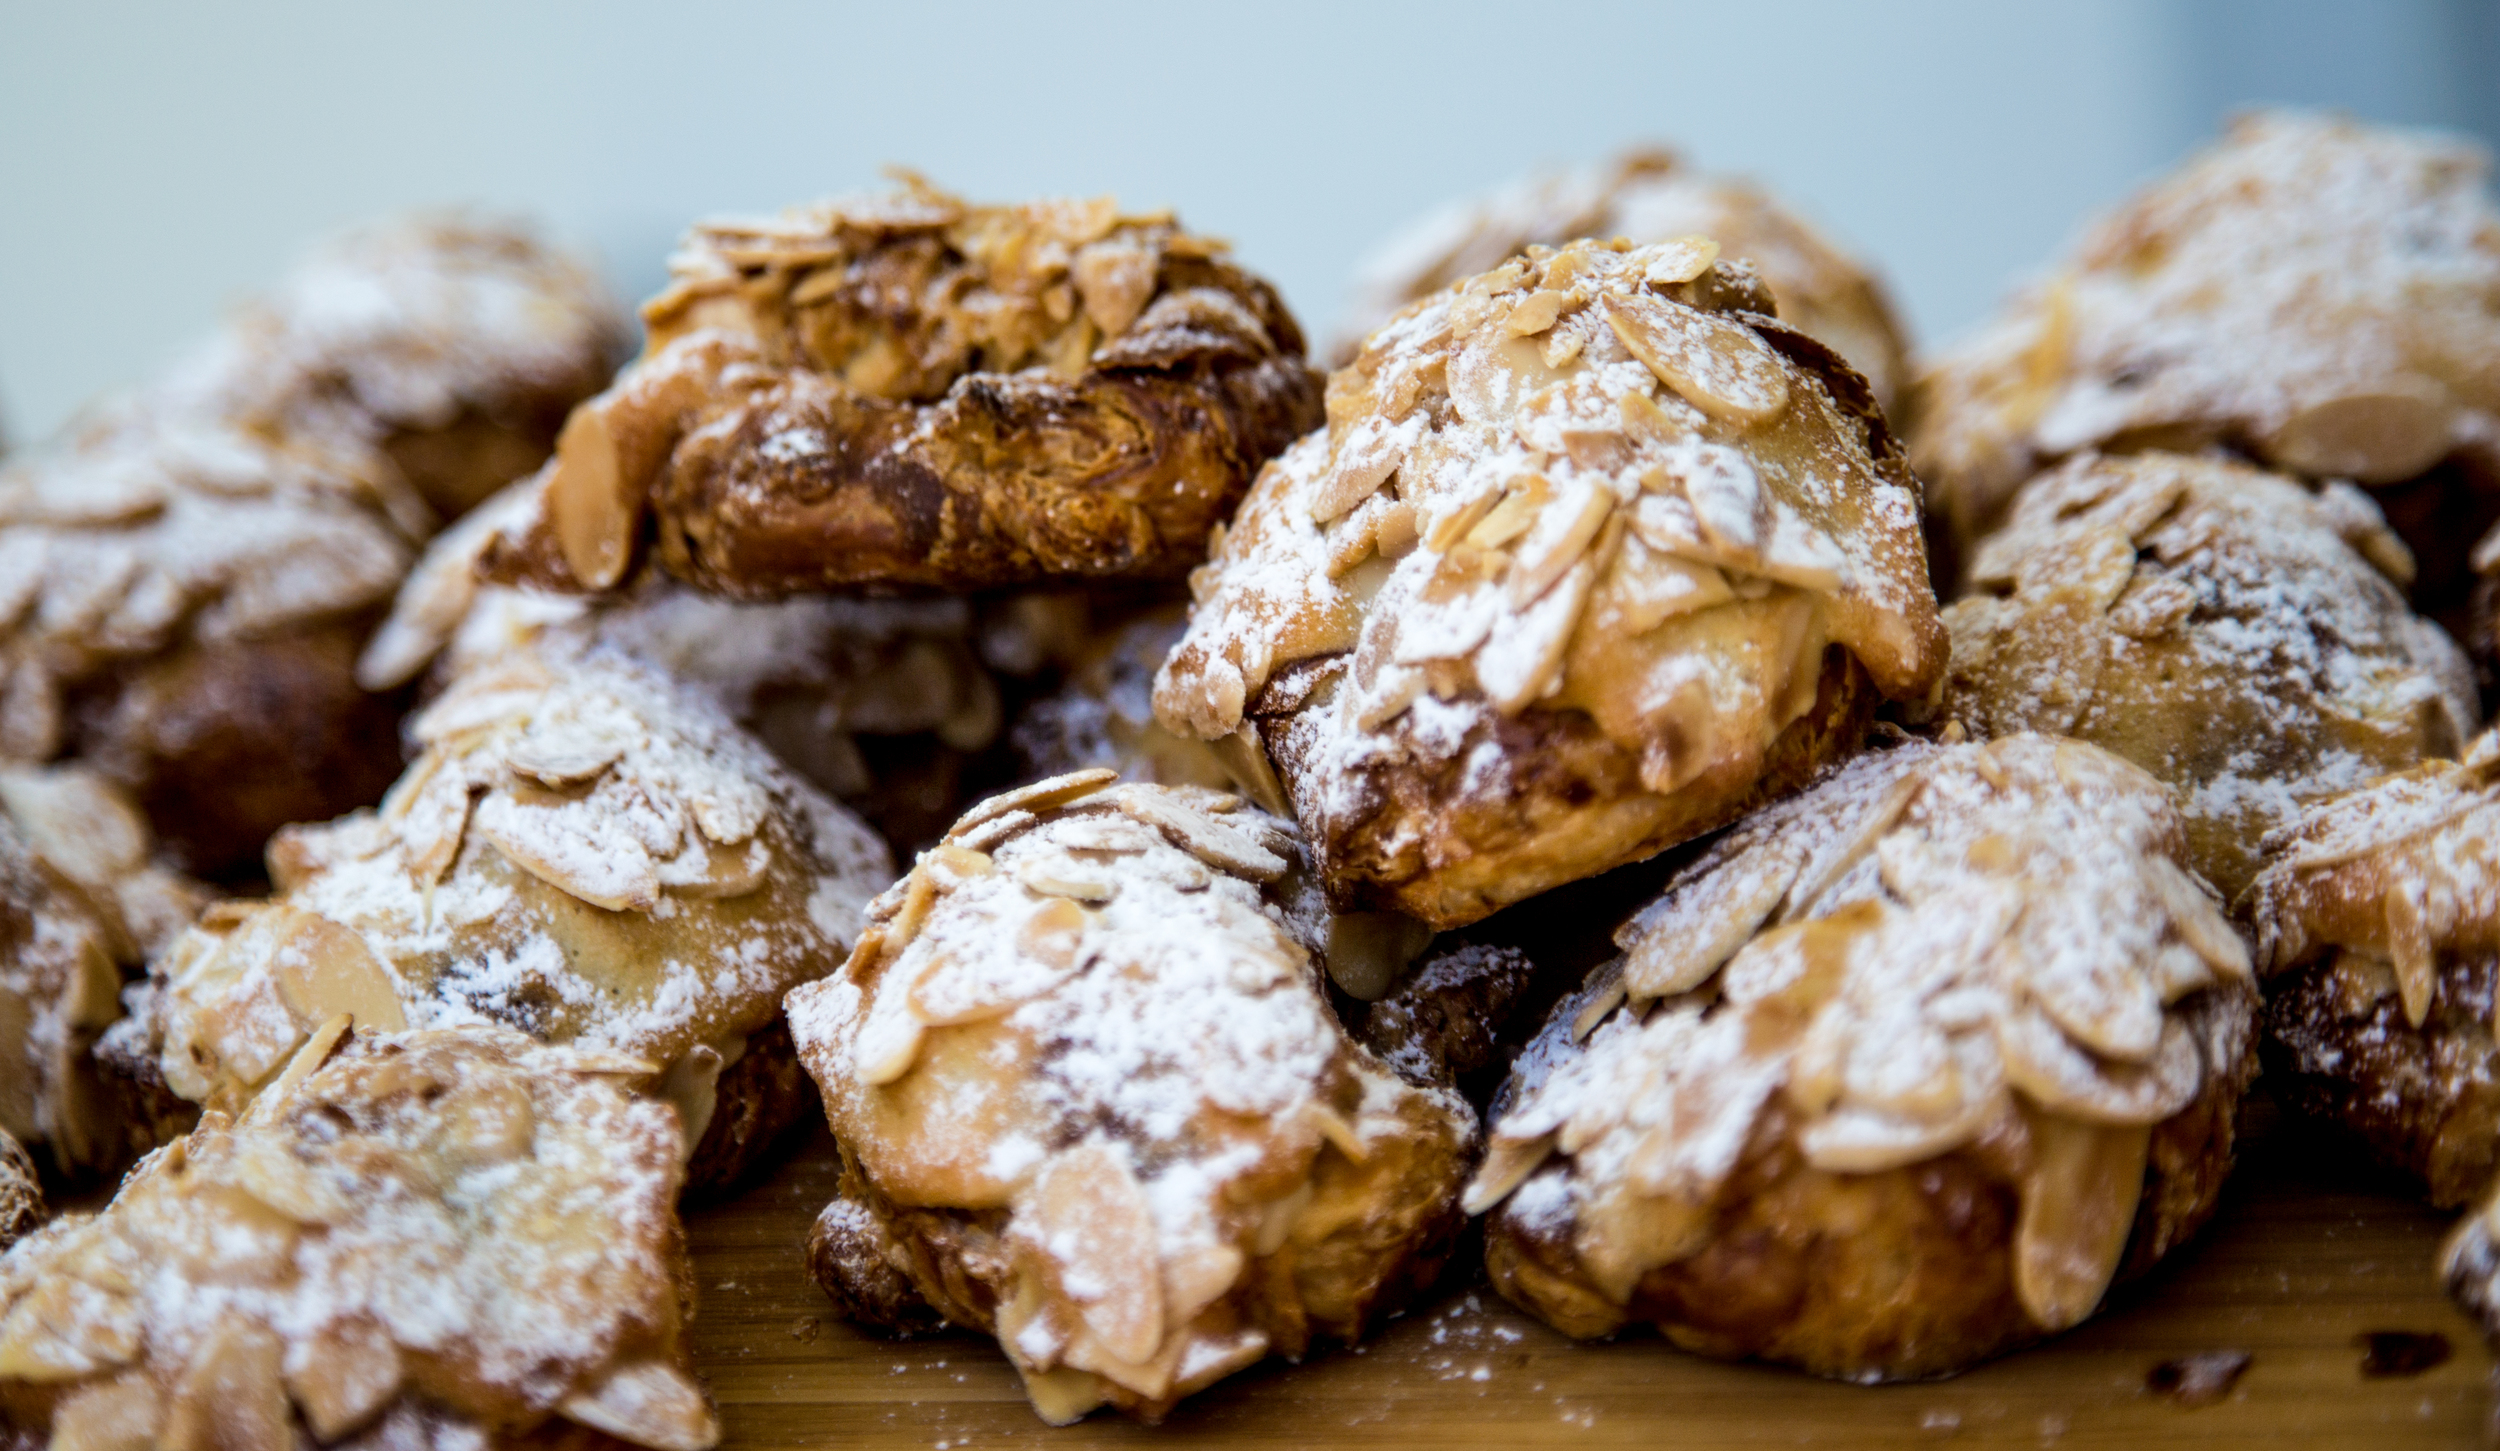 Freshly Baked Almond Croissants prepared in our kitchen by Chef Bruno LeGros